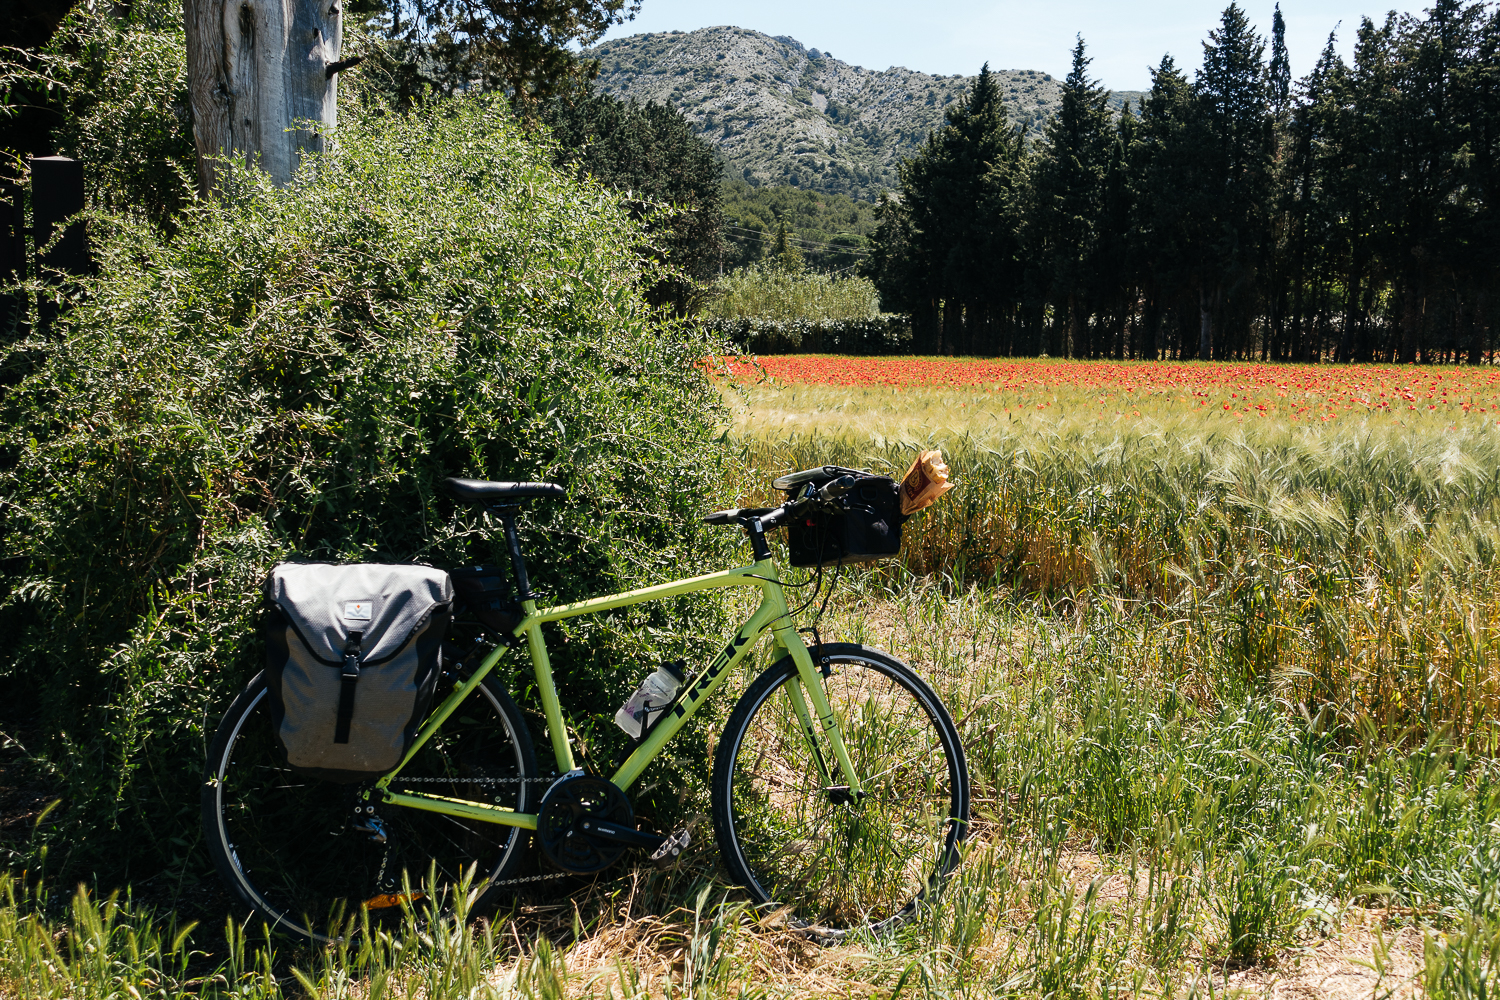 Wheat fields full of red poppies and a baguette, ready to ride!